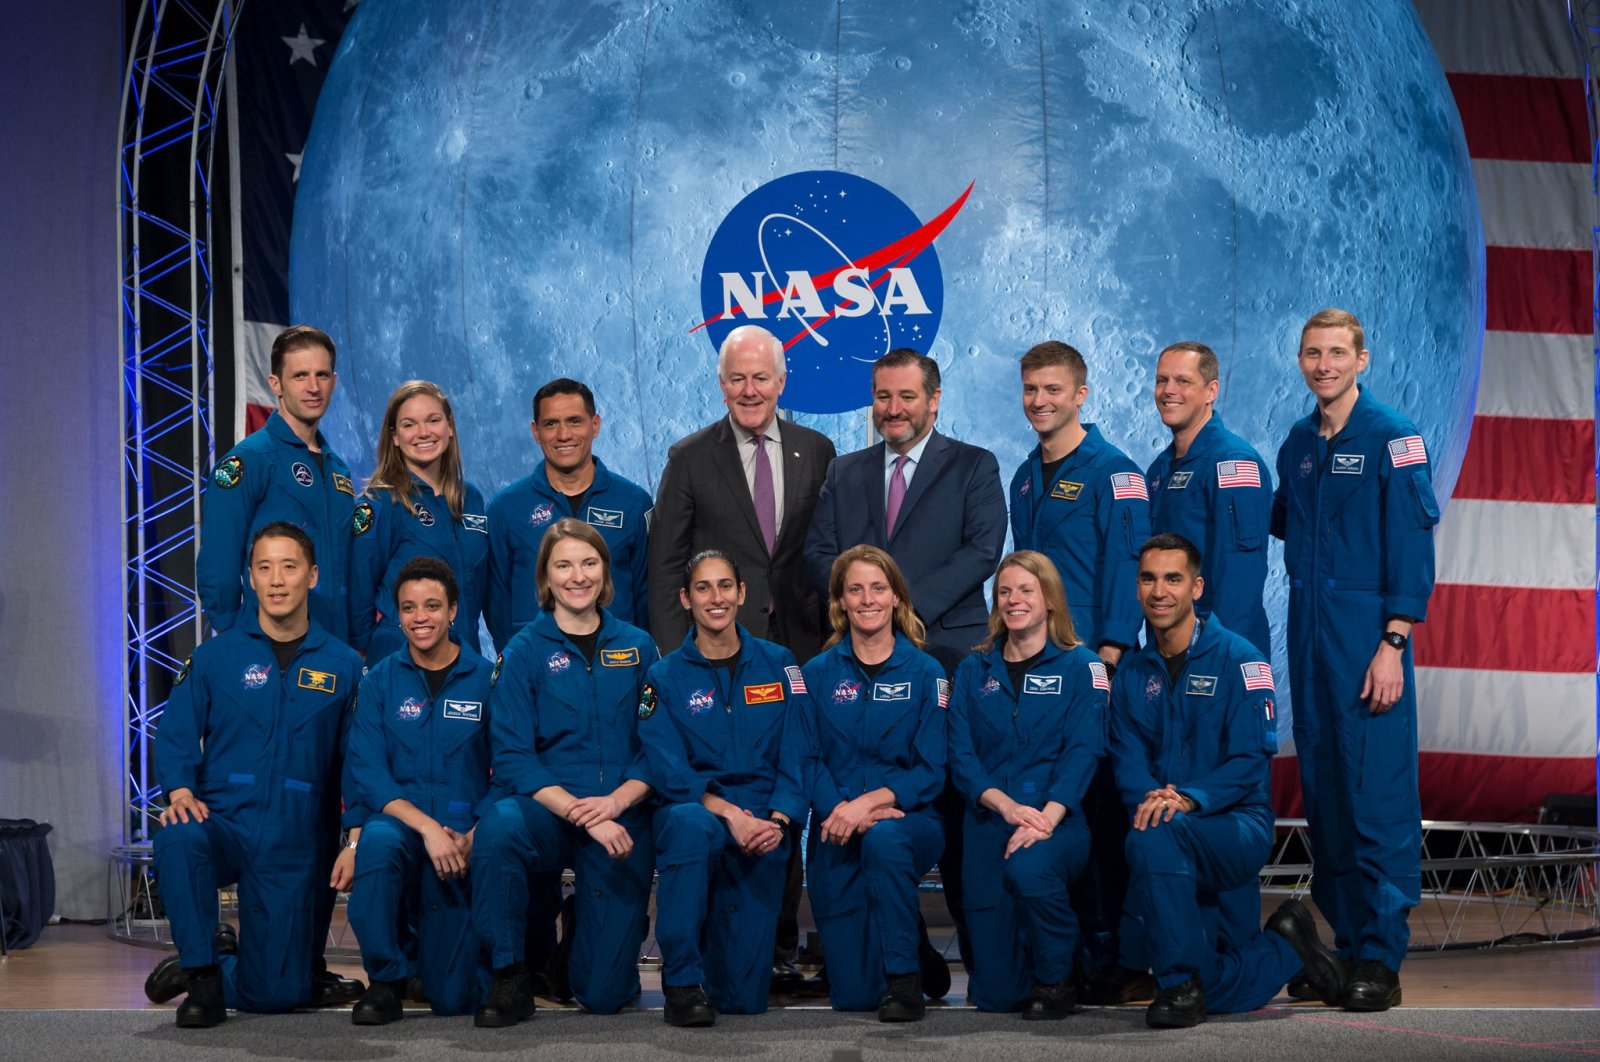 US Senators Ted Cruz and John Cornyn pose with Nasa and Canadian Space Agency graduating astronauts during the ceremony at Johnson Space Center in Houston Texas, on January 10, 2020. (AFP Photo)